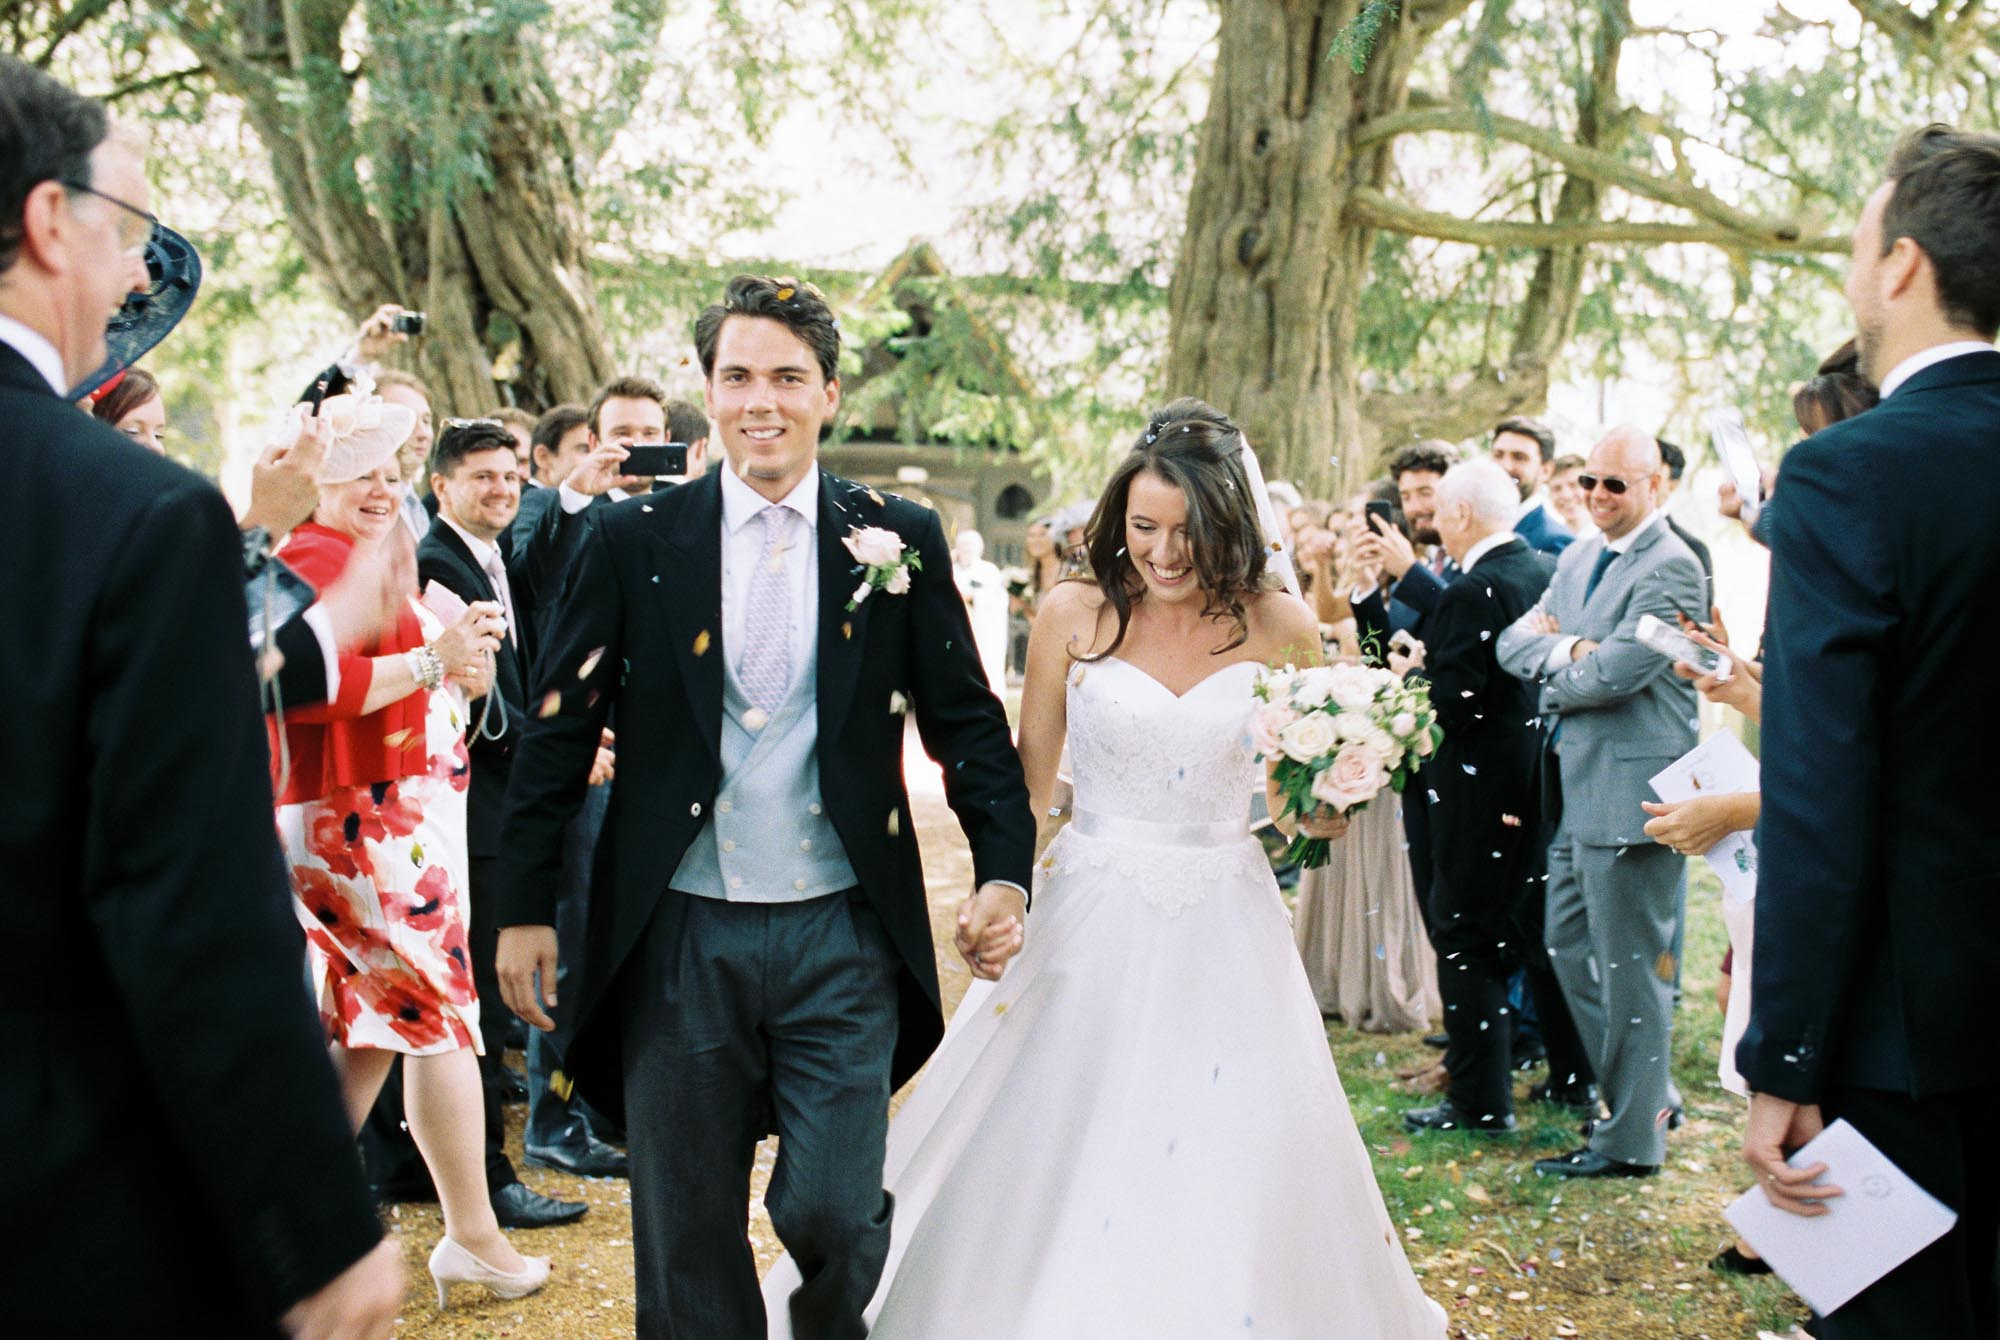 Bride and groom walking through confetti and leaving church